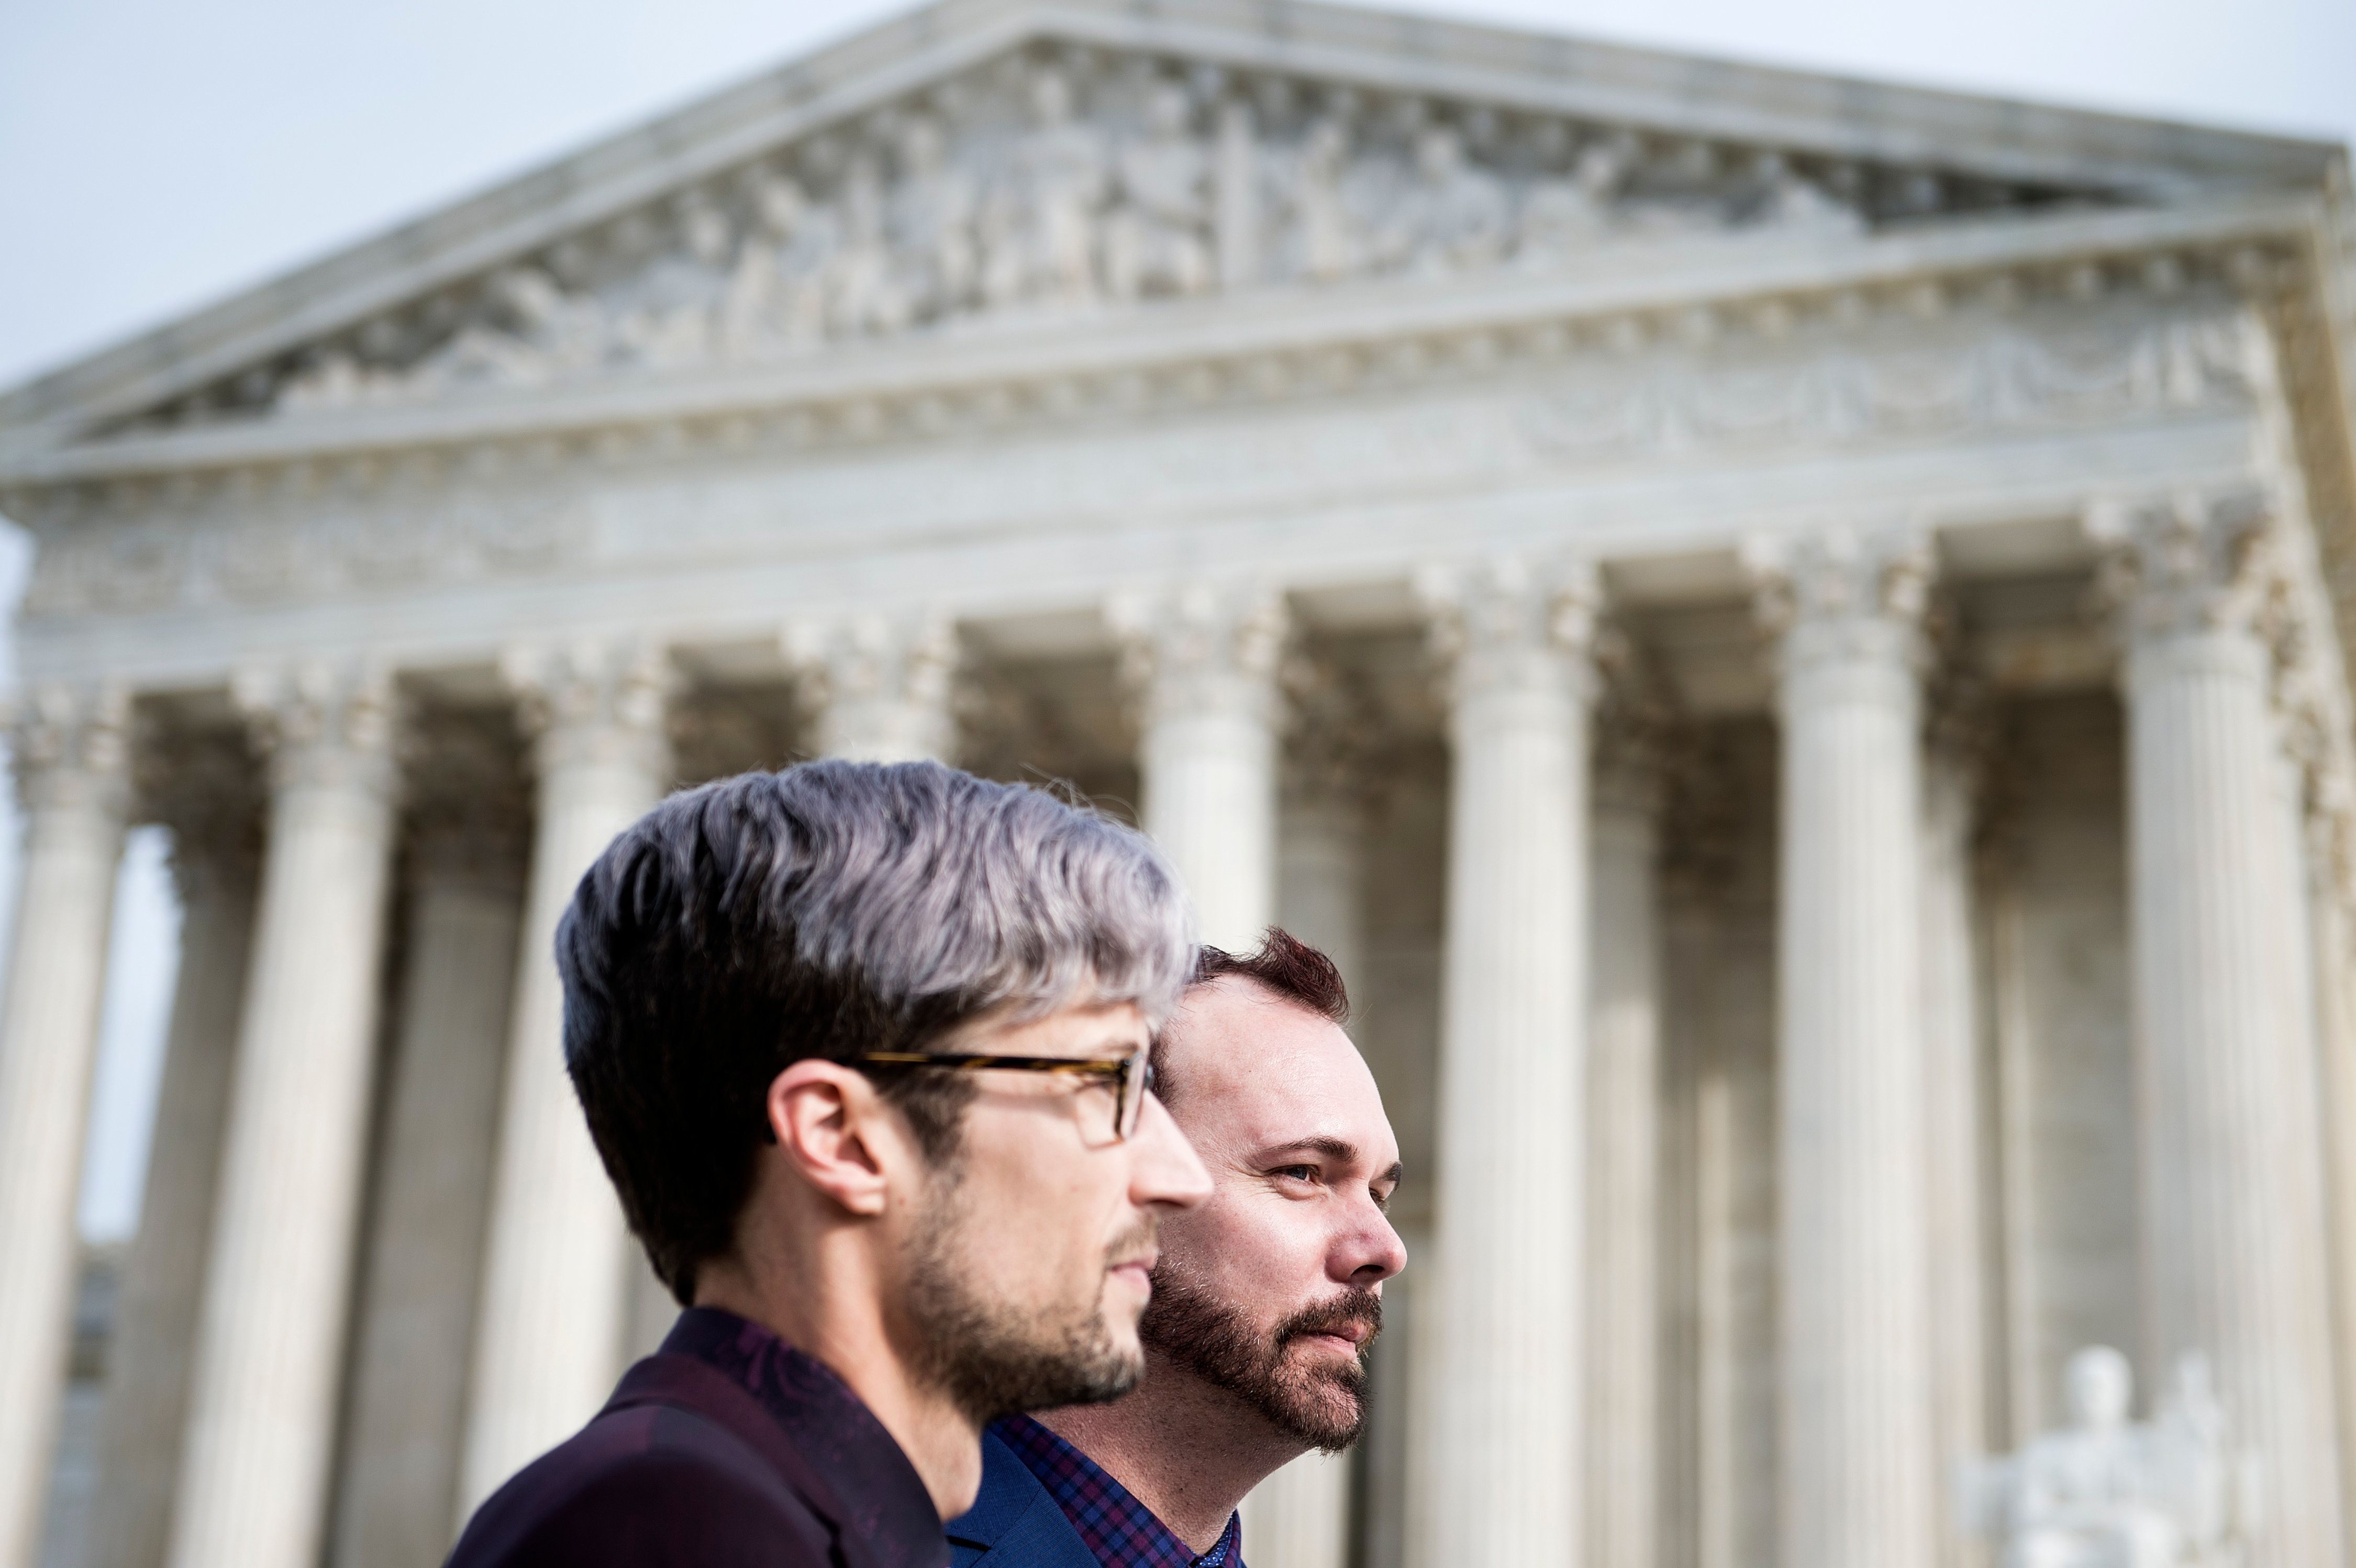 Dave Mullins (L) and his spouse Charlie Craig stand outside the US Supreme Court after Masterpiece Cakeshop vs. Colorado Civil Rights Commission is heard on December 5, 2017 in Washington, DC. The US Supreme Court is to hear arguments on Tuesday in a case that has been described as the most significant for gay rights since it approved same-sex marriage two years ago. The landmark case pits a gay couple, Dave Mullins and Charlie Craig, against a Colorado bakery owner who refused in July 2012 to make a cake for their same-sex wedding reception.  / AFP PHOTO / Brendan Smialowski        (Photo credit should read BRENDAN SMIALOWSKI/AFP/Getty Images)